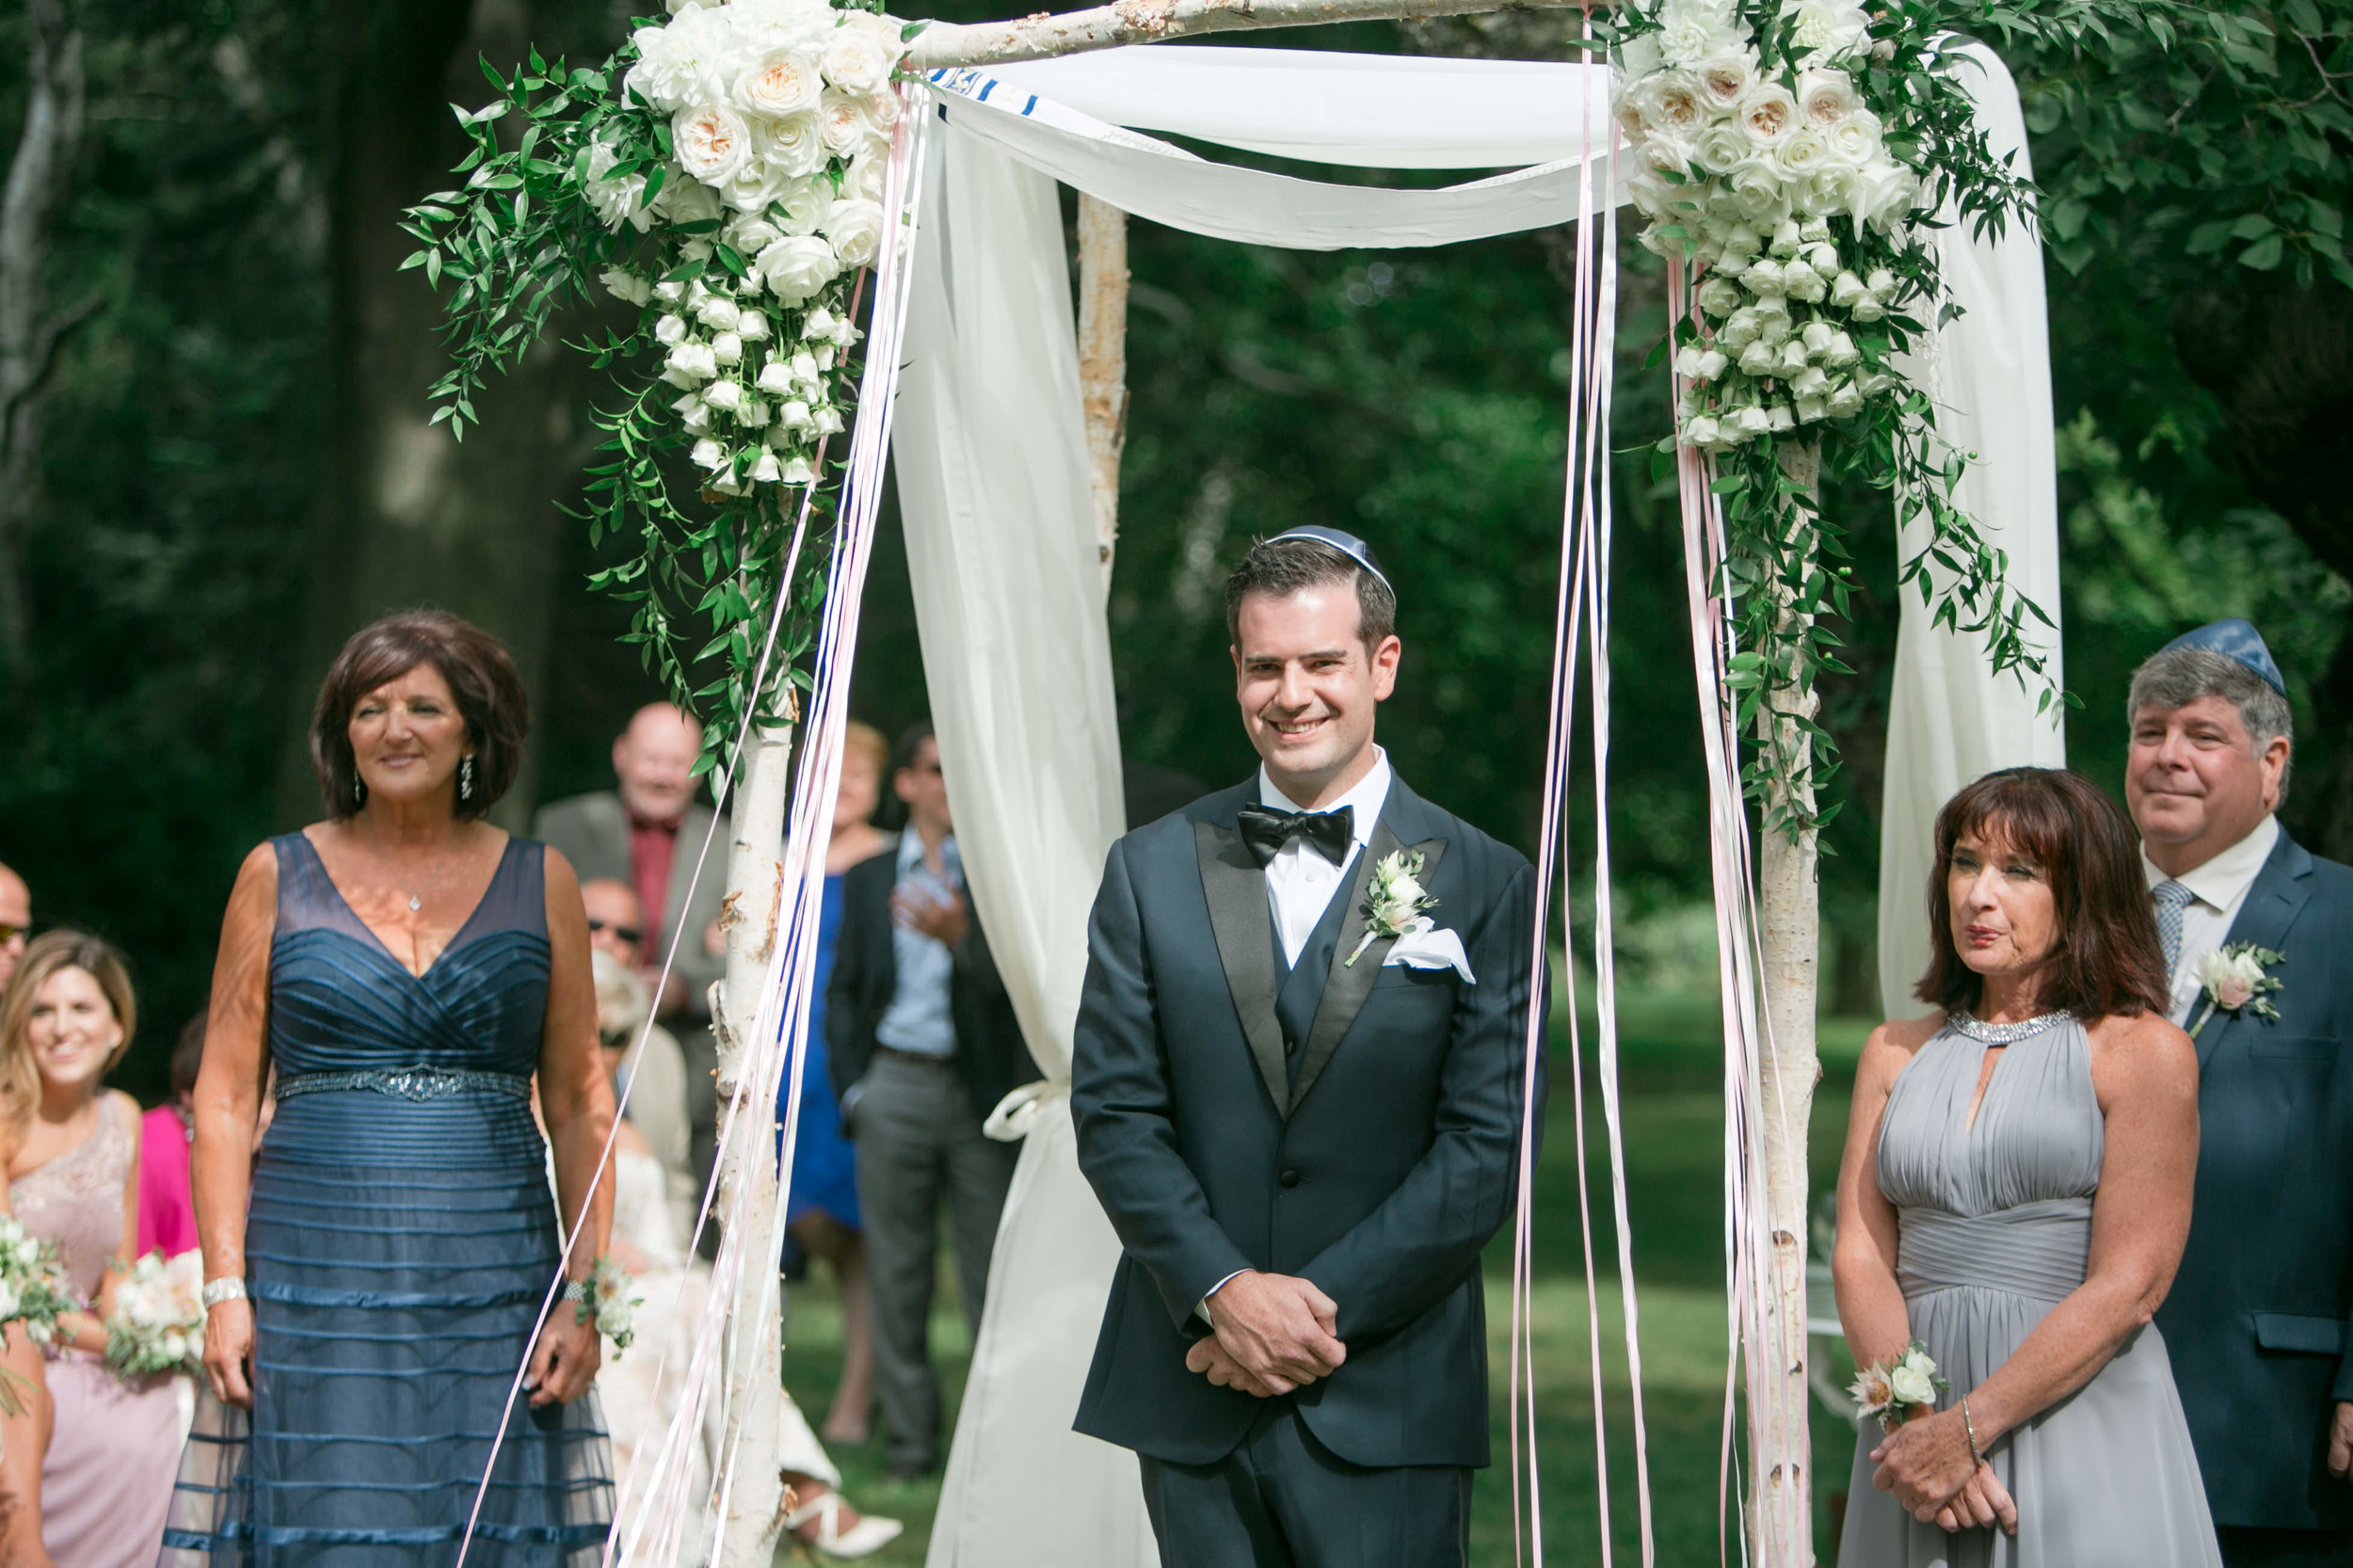 Ashley___Zac___Daniel_Ricci_Weddings___High_Res._Finals_288.jpg